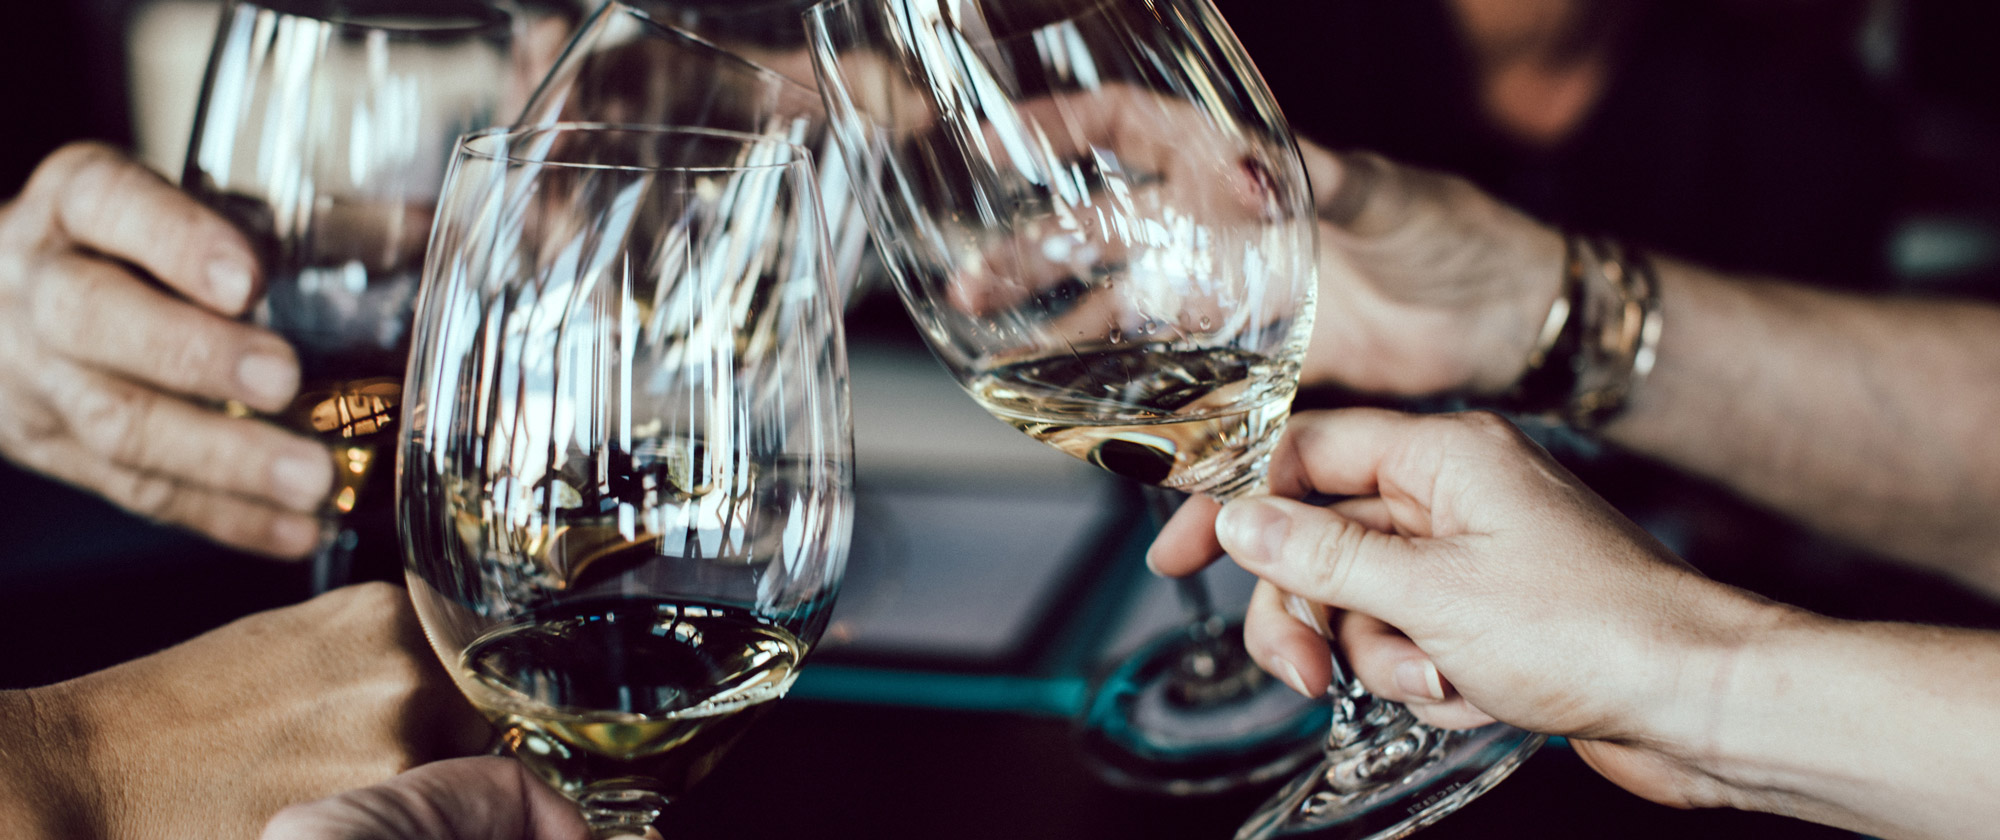 World Cup of Wine Series 1 starts with a bang on March 25 - with France v Italy in a pitched battle to find out who makes the better wines.